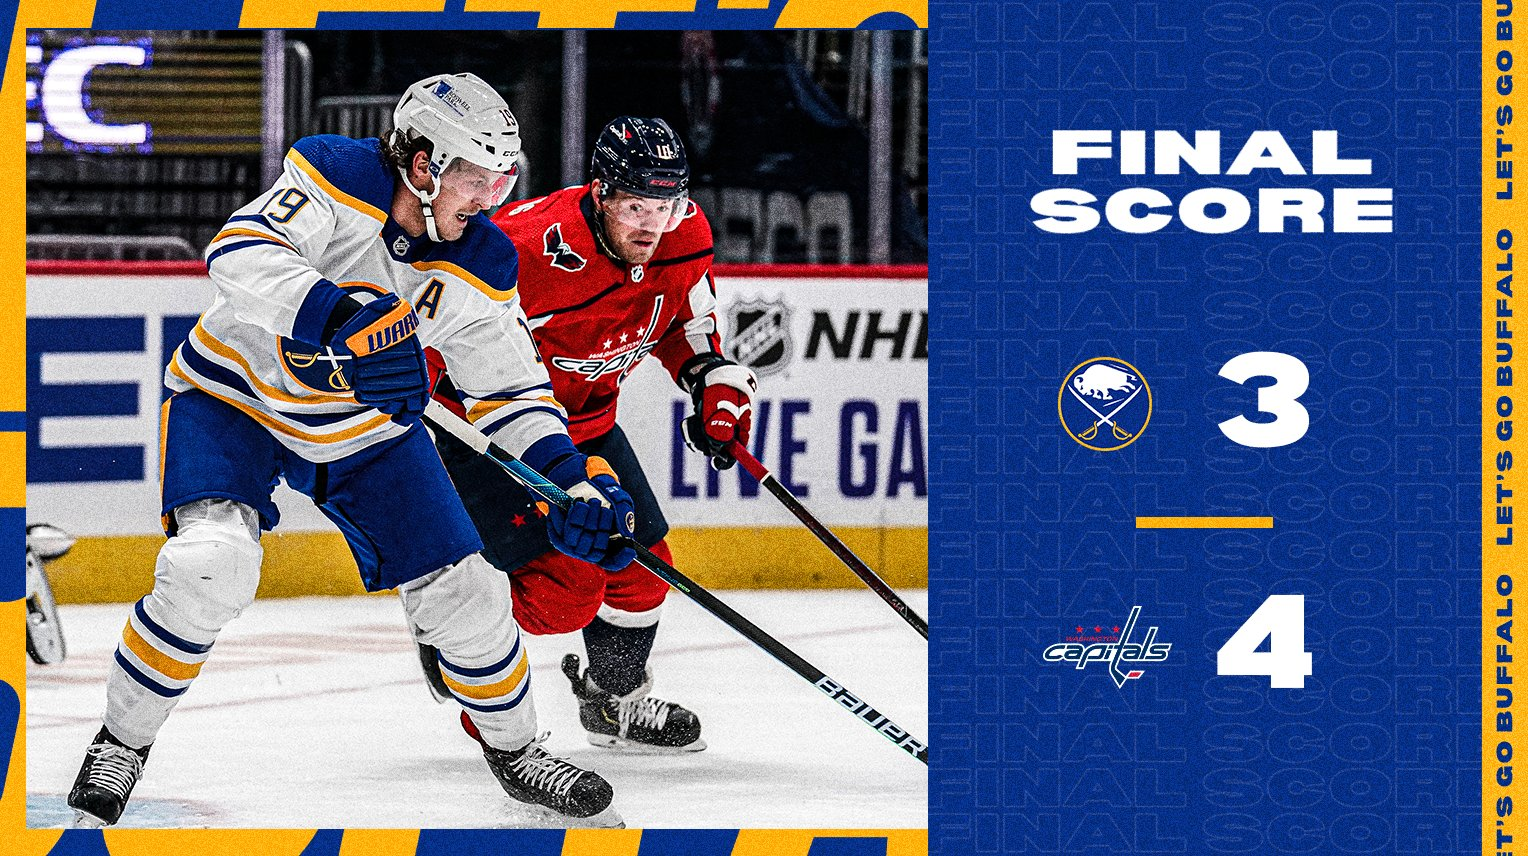 Sabres fall to Capitals in shootout, 4-3